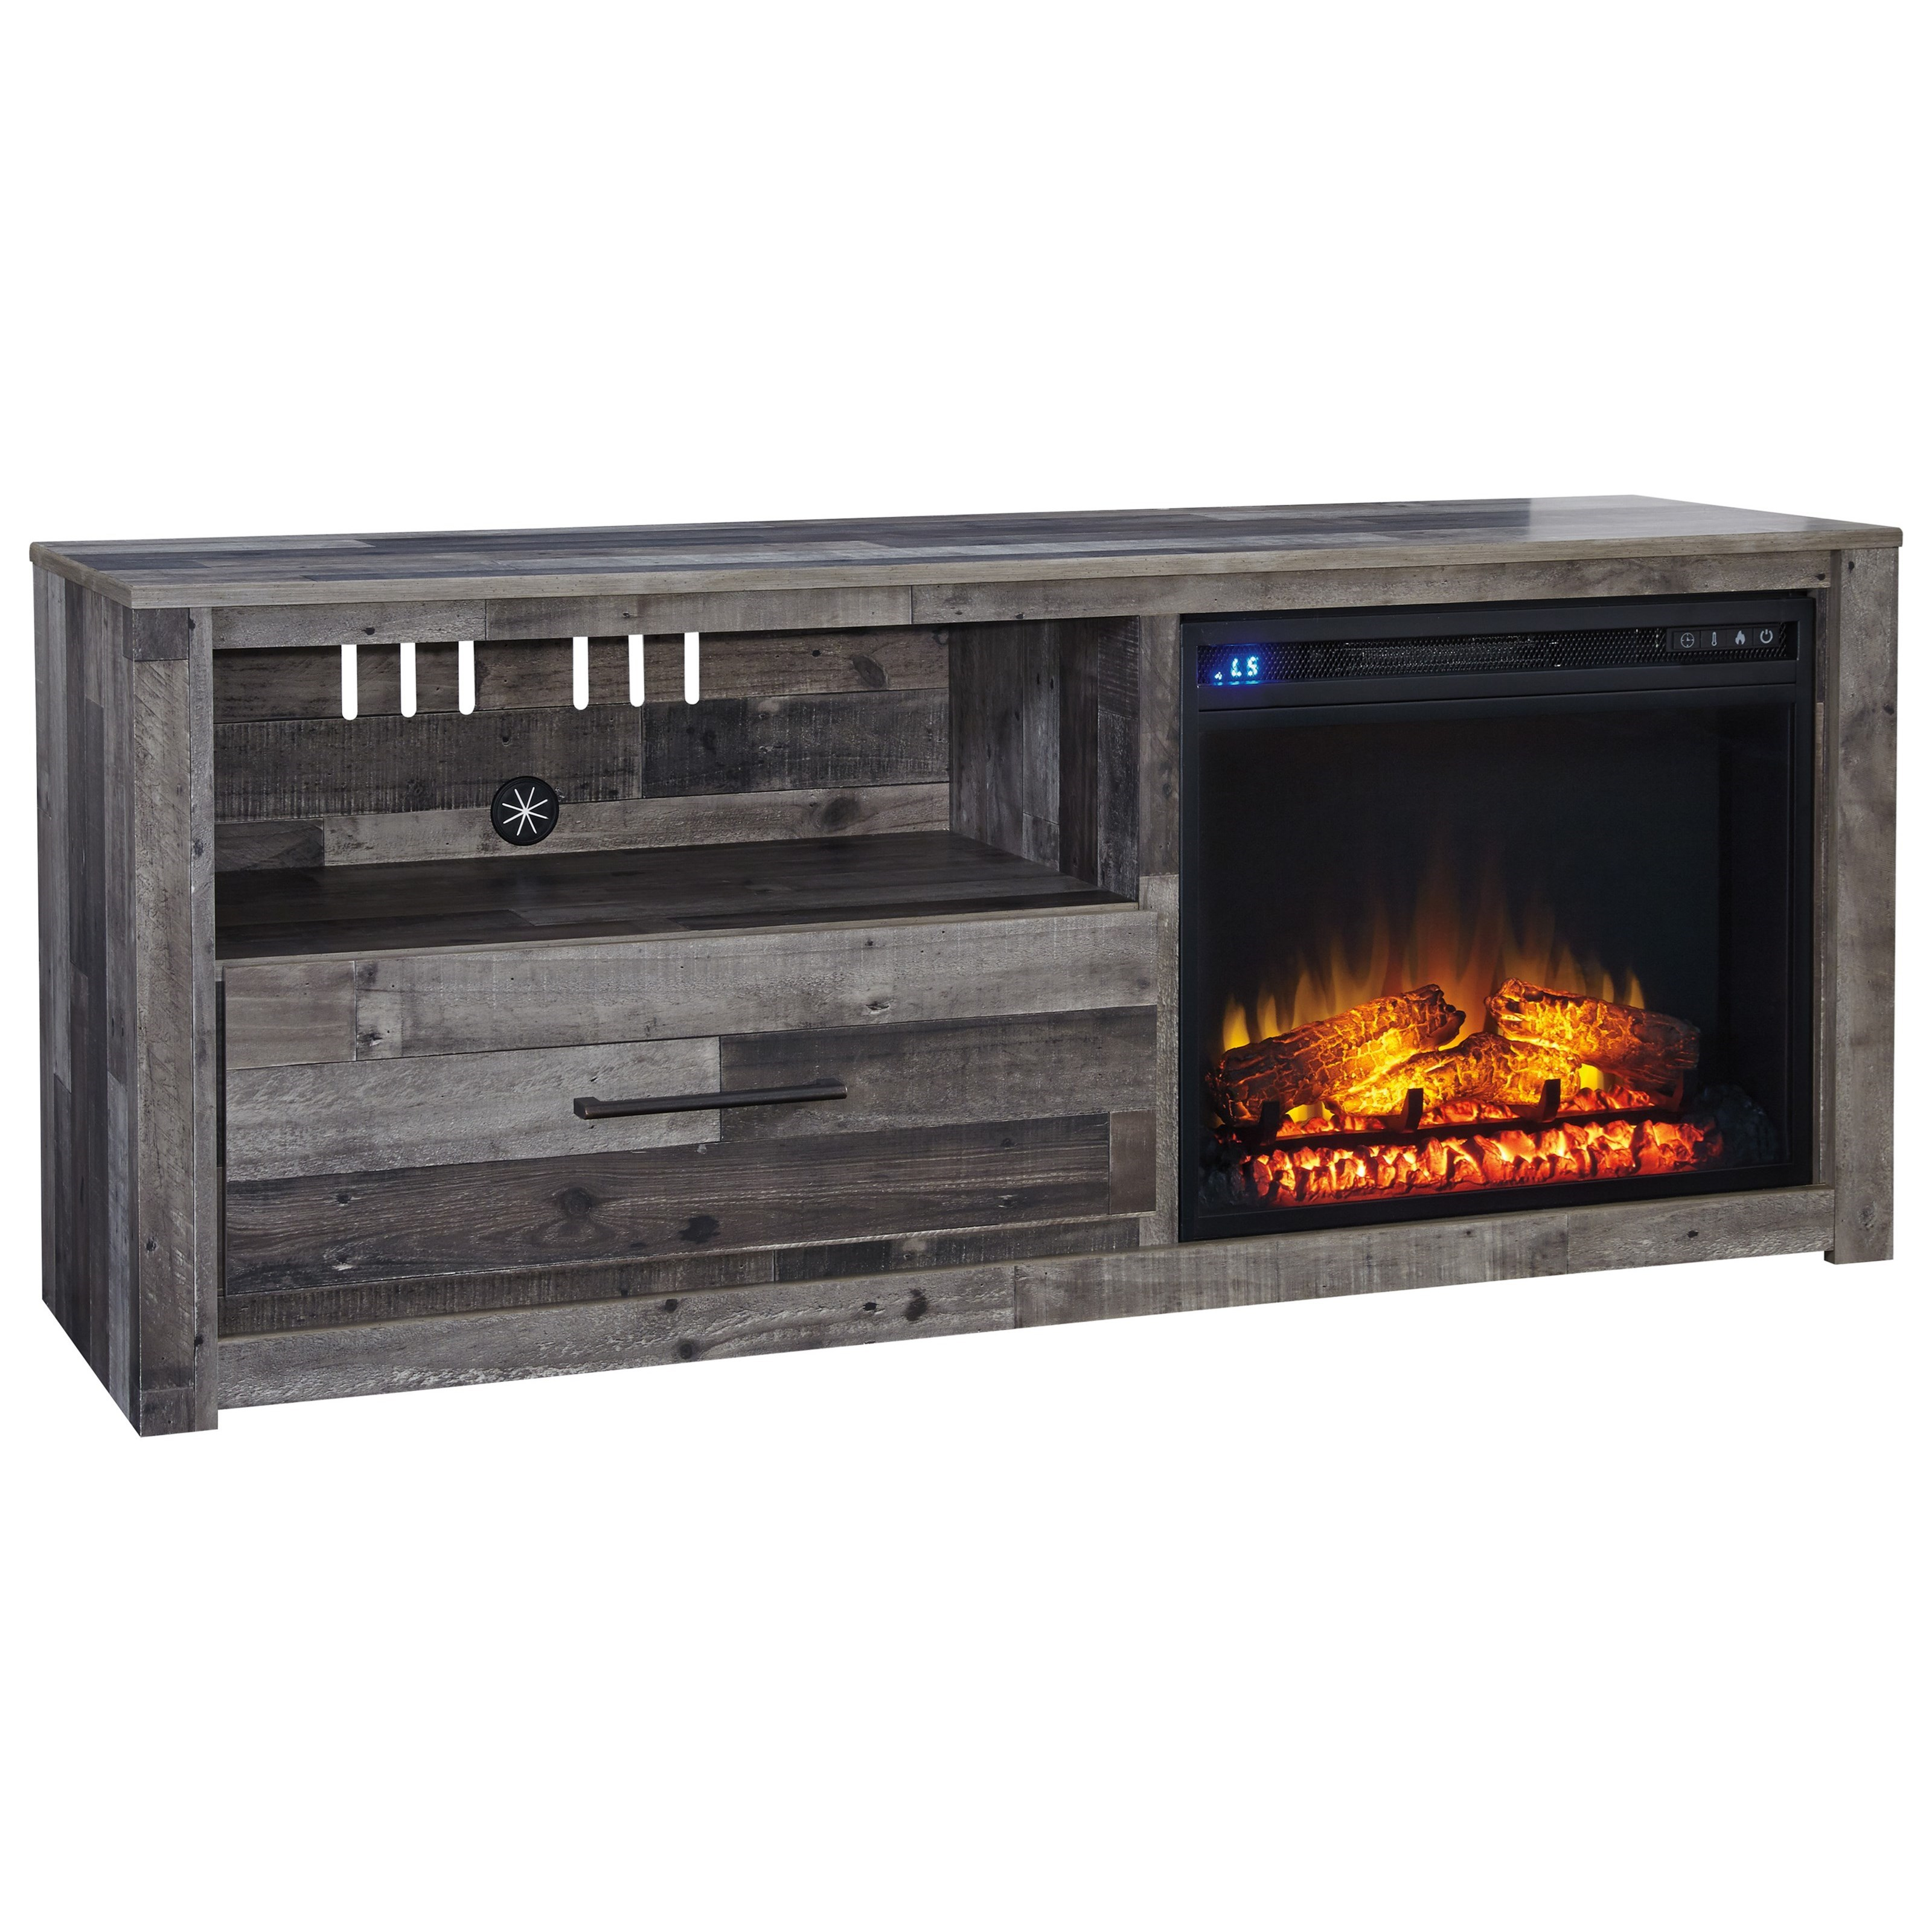 Derekson TV Stand with LED Fireplace by Signature Design by Ashley at Catalog Outlet